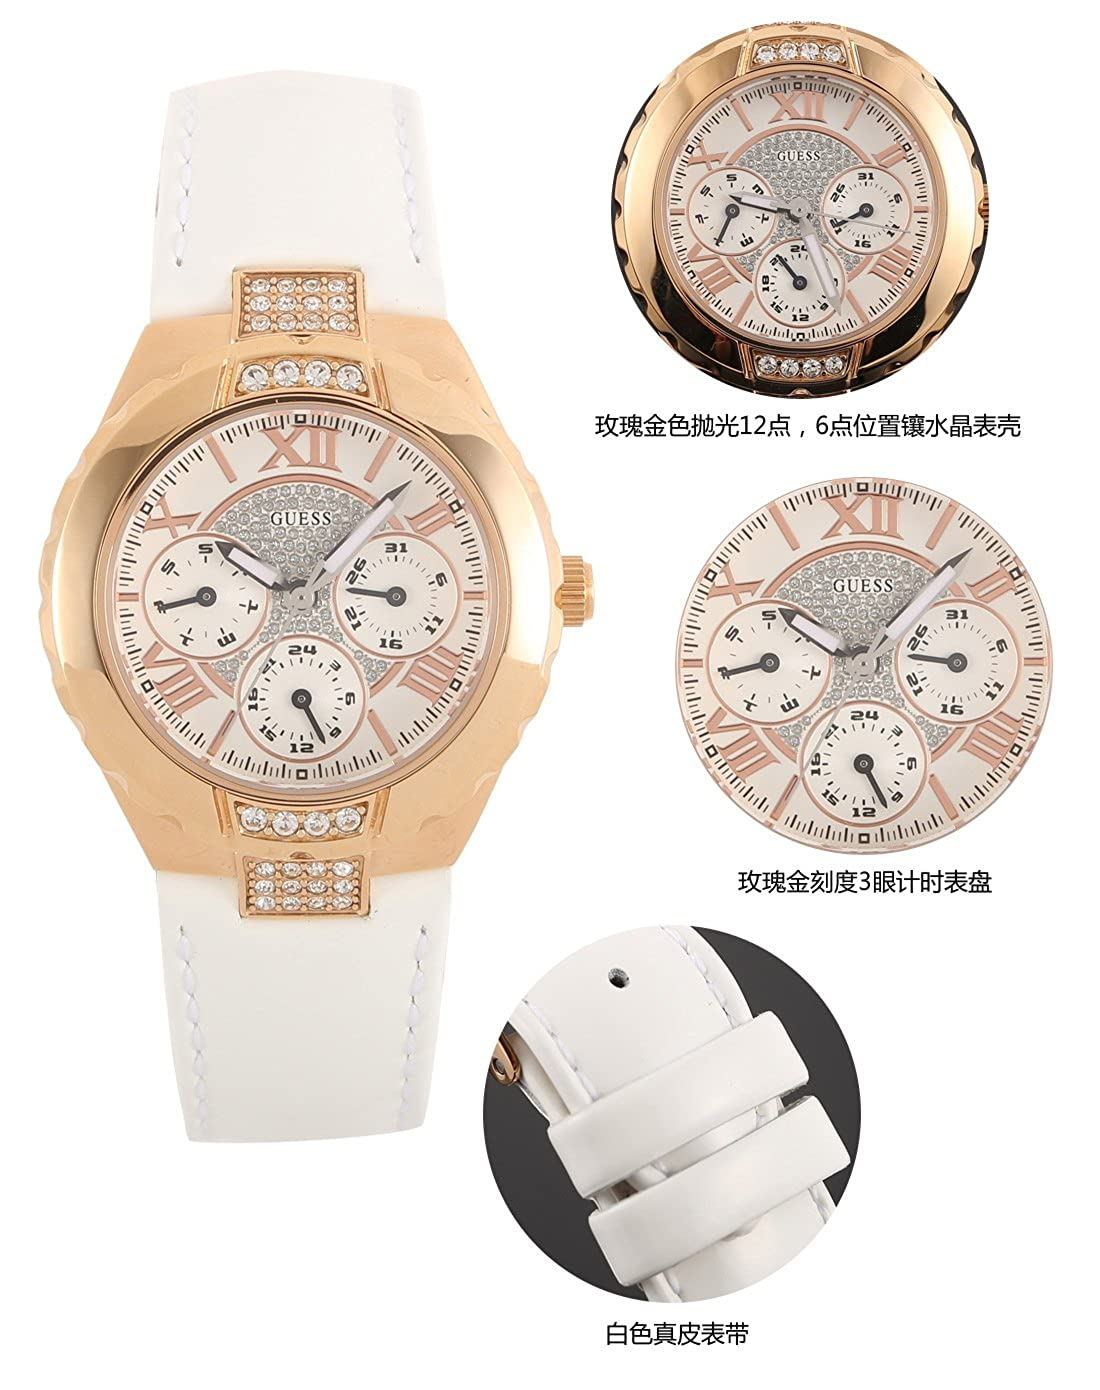 Amazon.com: Guess Ladies Watches Guess Sport Ladies Leather Strap W11566L1 - WW: Guess: Watches